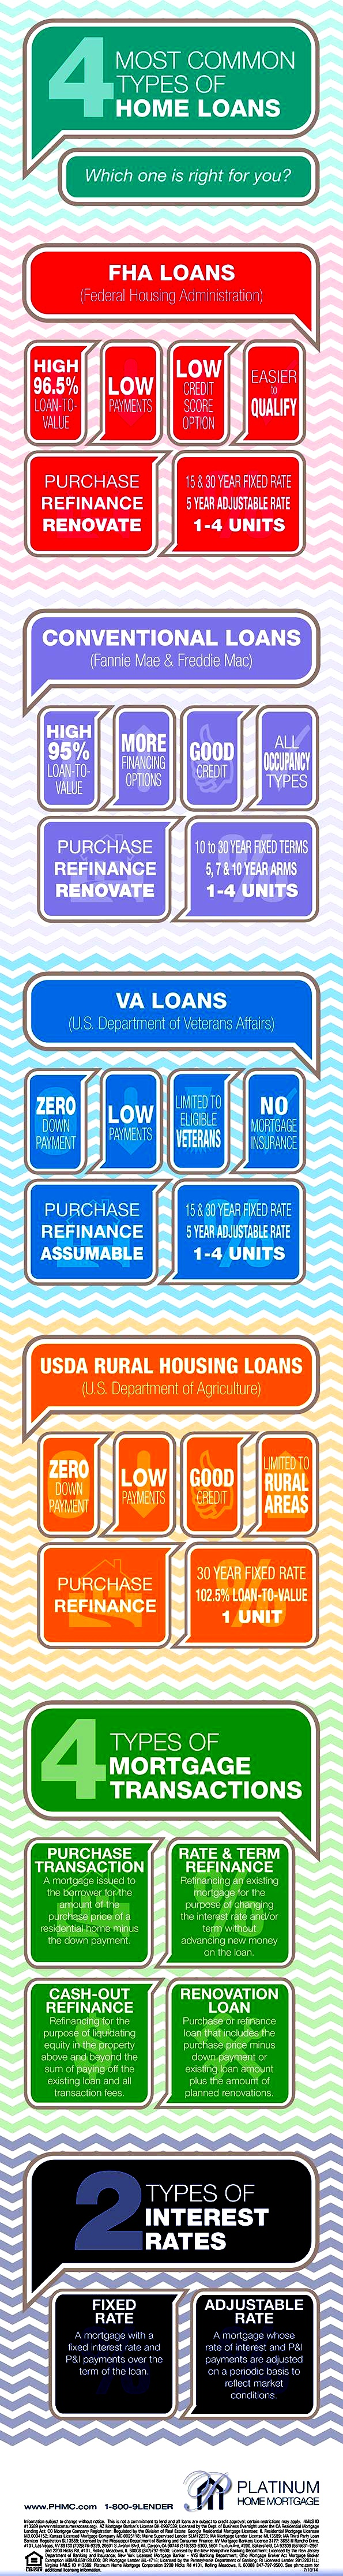 Types Of Home Loans Loan Mortgage Conventional Fha Va Usda Borrower Borrowing Realestate Bu Home Loans Real Estate Buyers Real Estate Tips